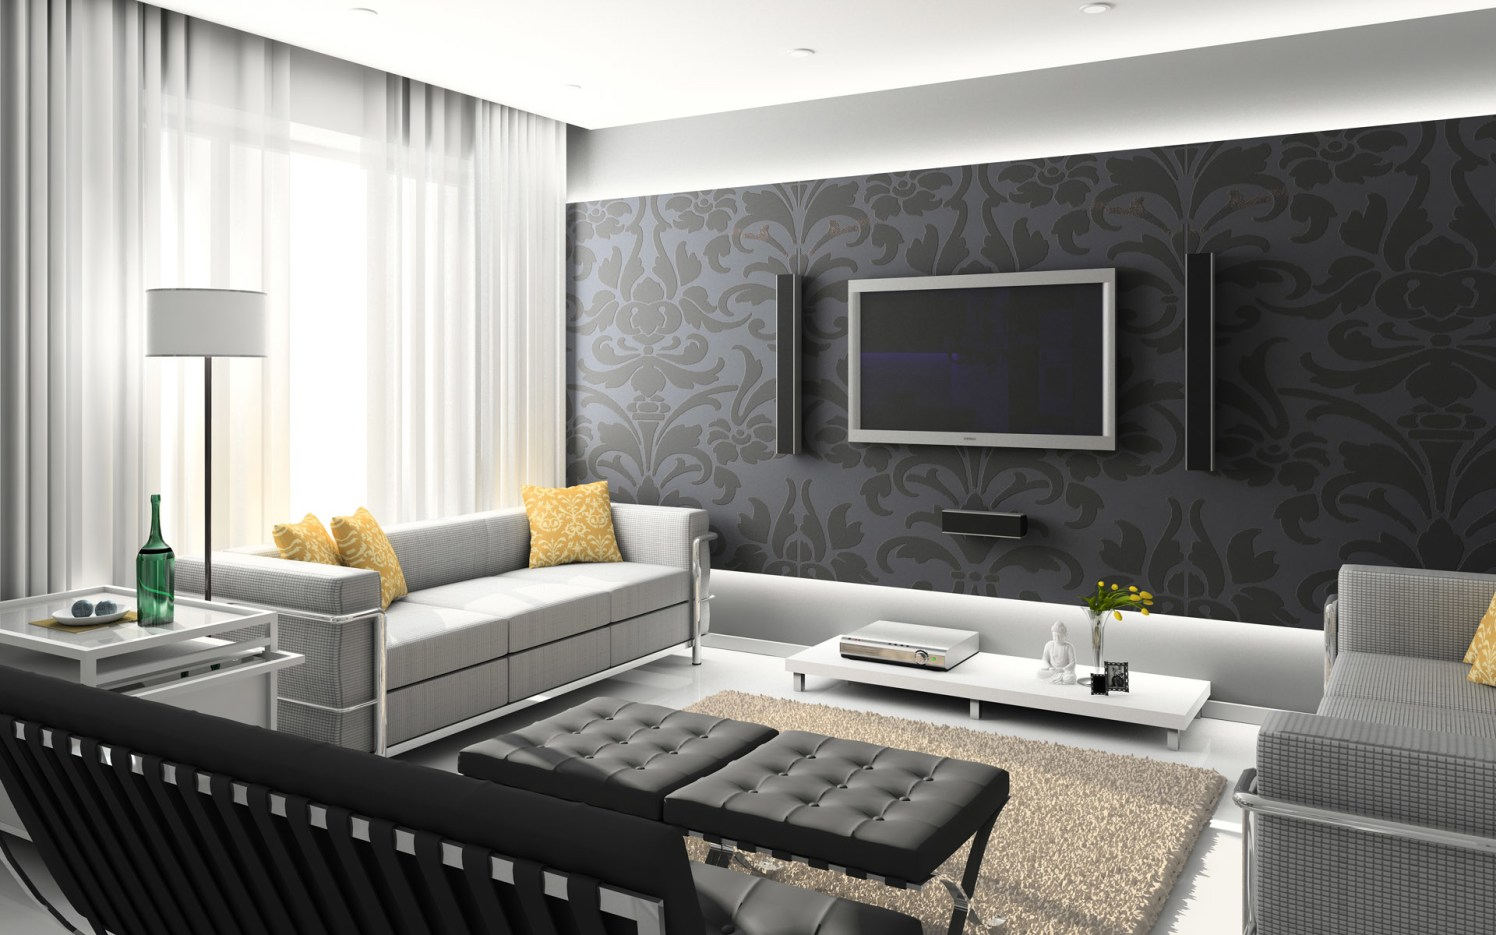 Shades of grey by Priya Shah(test) Modern | Interior Design Photos & Ideas